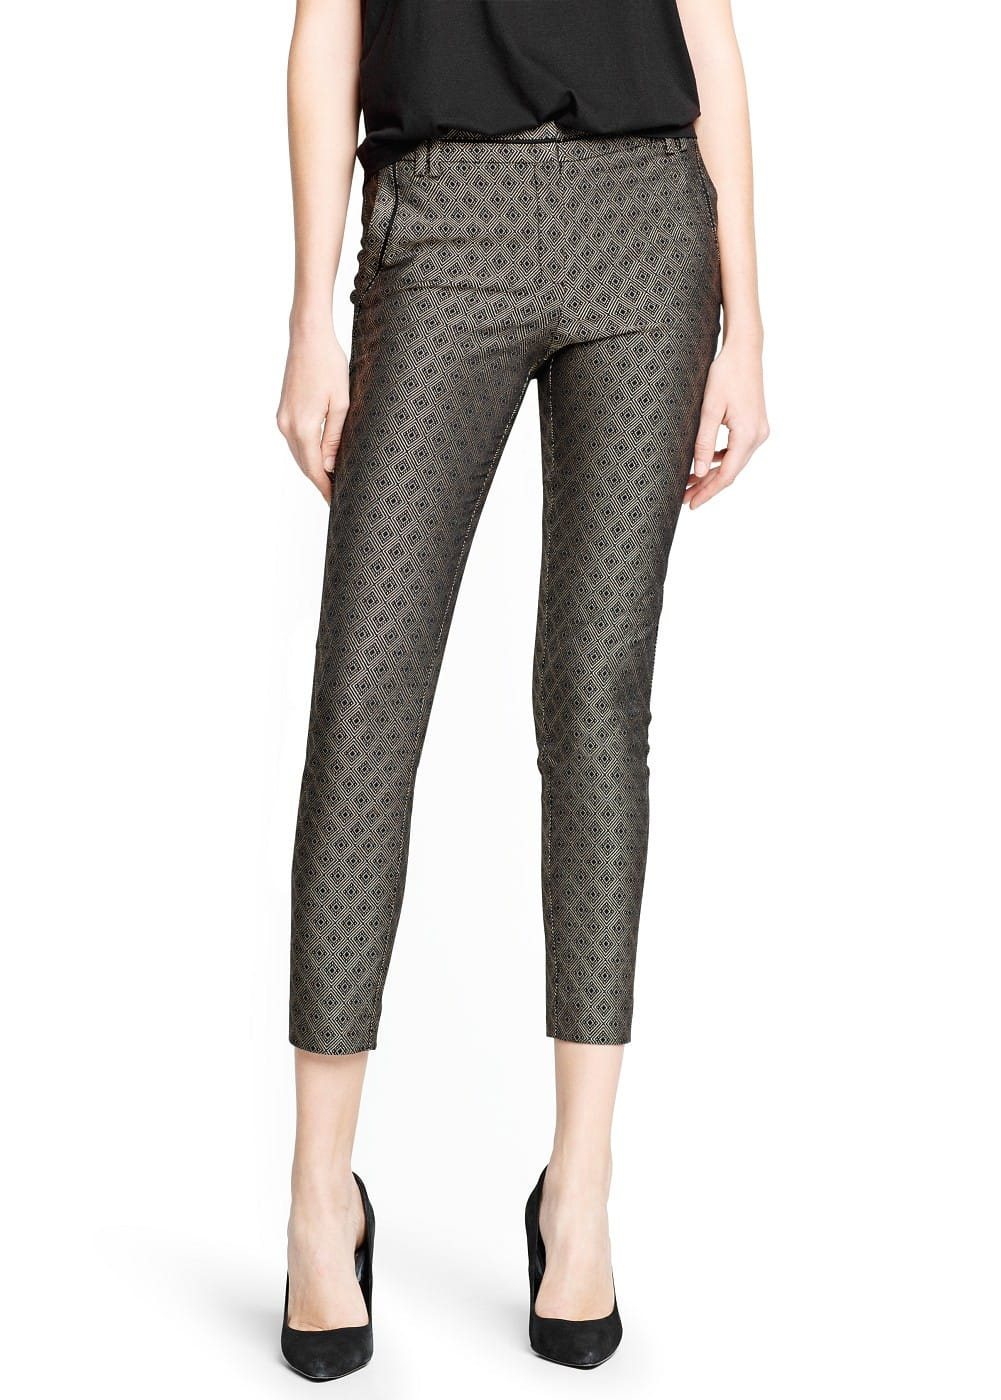 Rhombus jacquard suit trousers